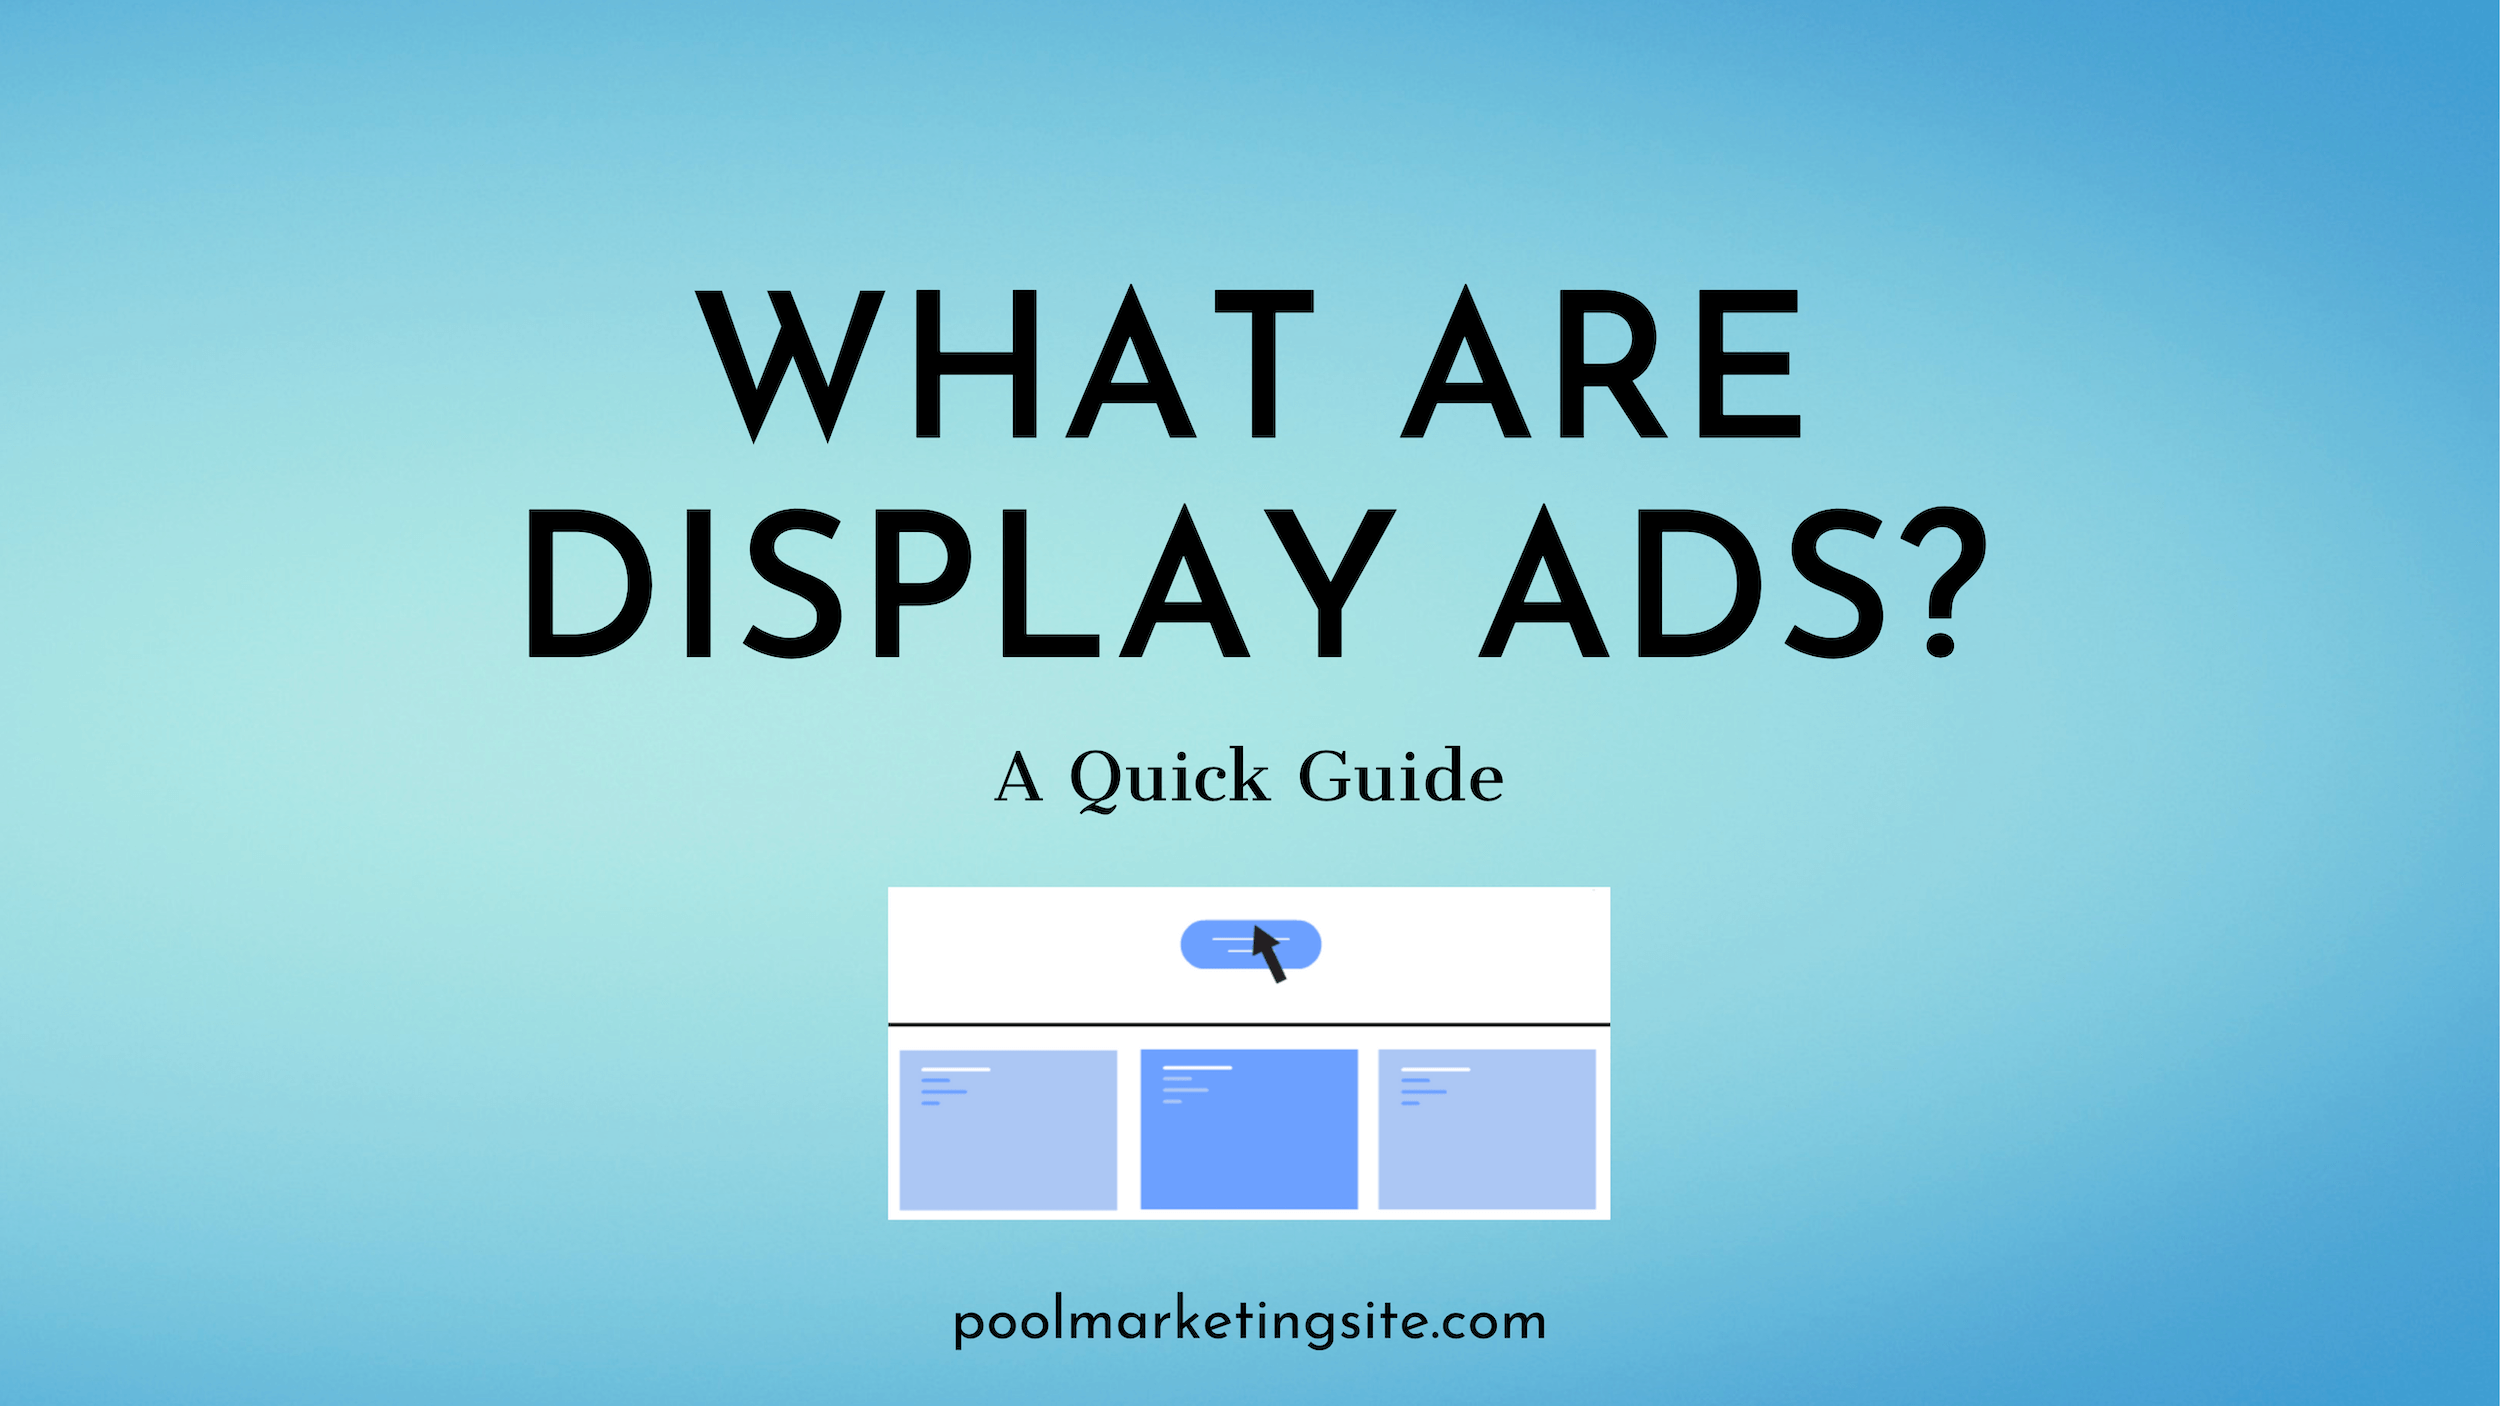 What are Display Ads? A Quick Guide